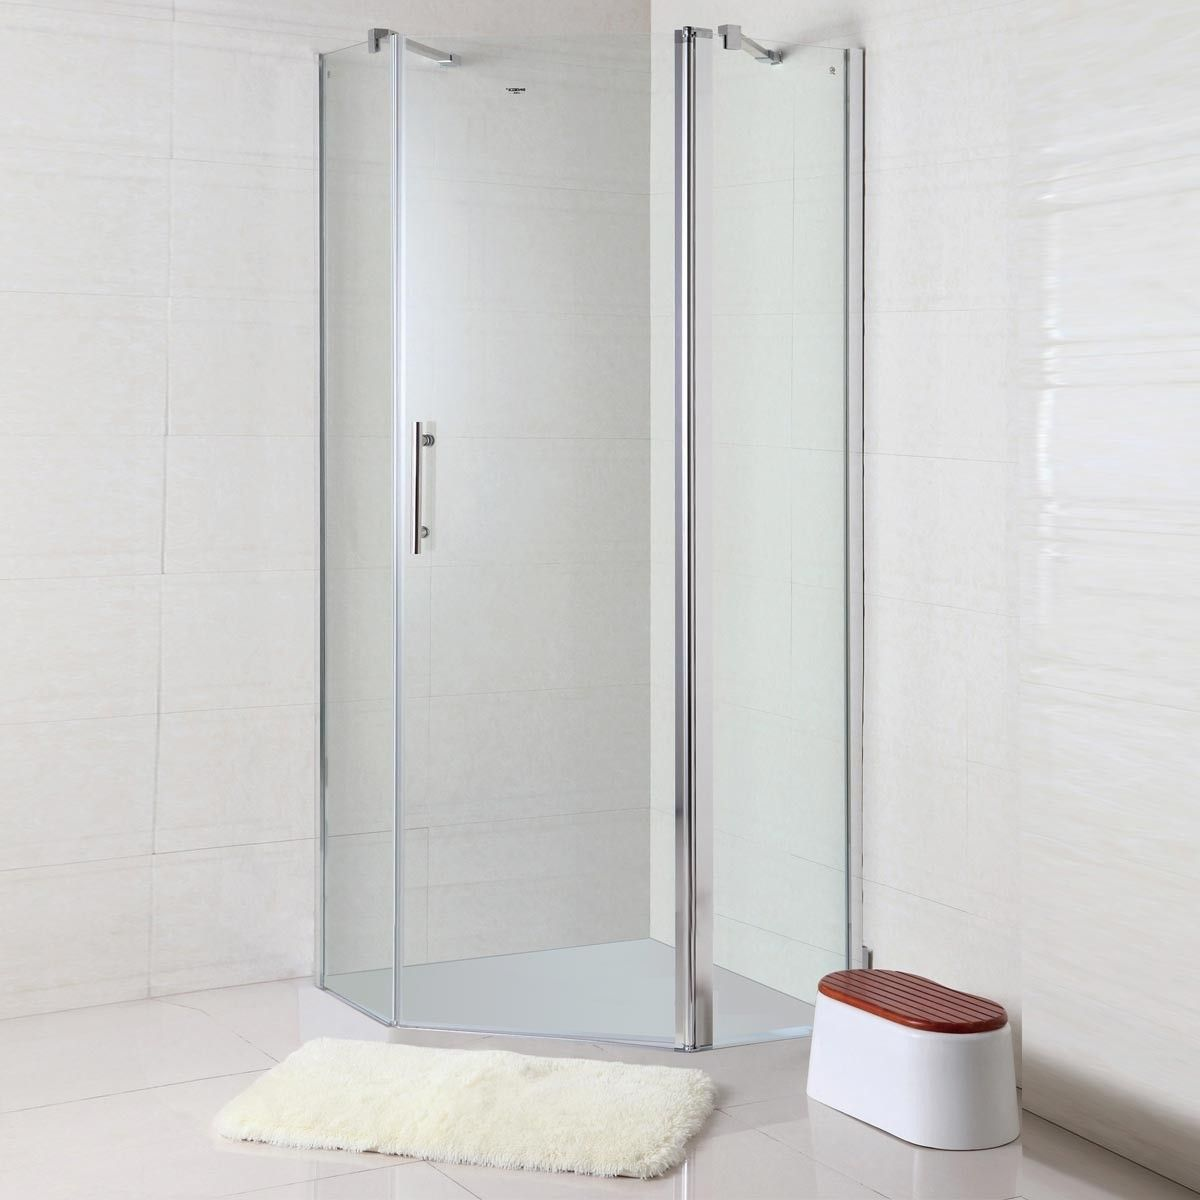 36 X 36 In 90 X 90 Cm Clear Tempered Glass Corner Shower Stall WB 03 D